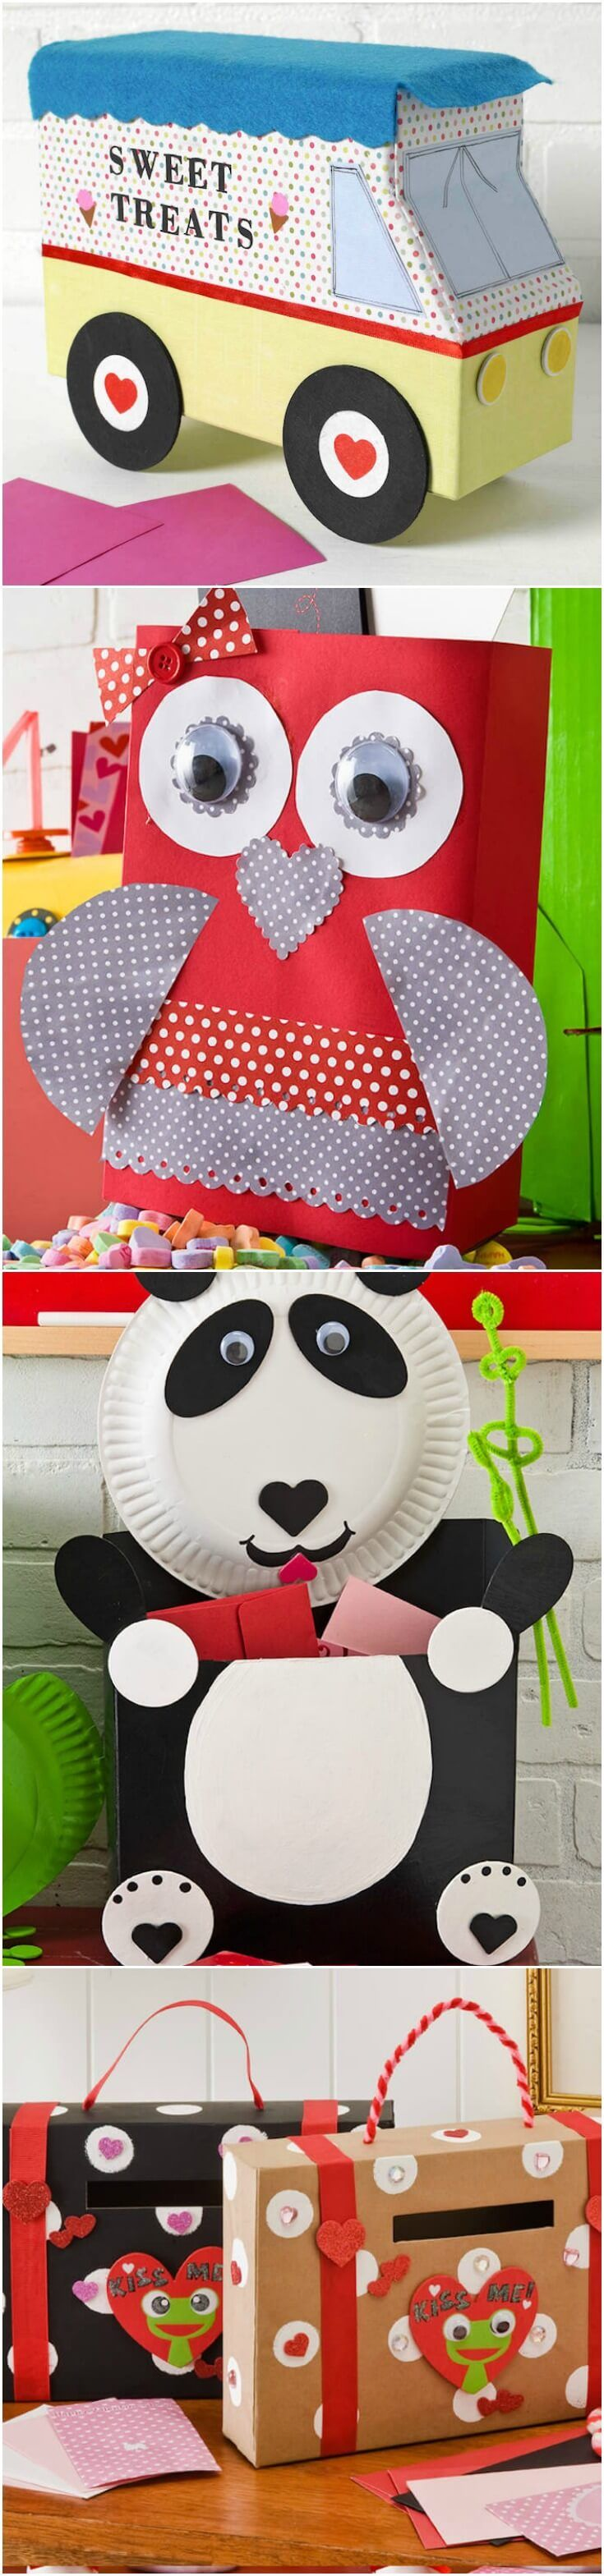 A collection of 8 creative and fun ideas for valentine boxes! Perfect for classroom, parties, home, and more - your kids will love these. via @modpodgerocks